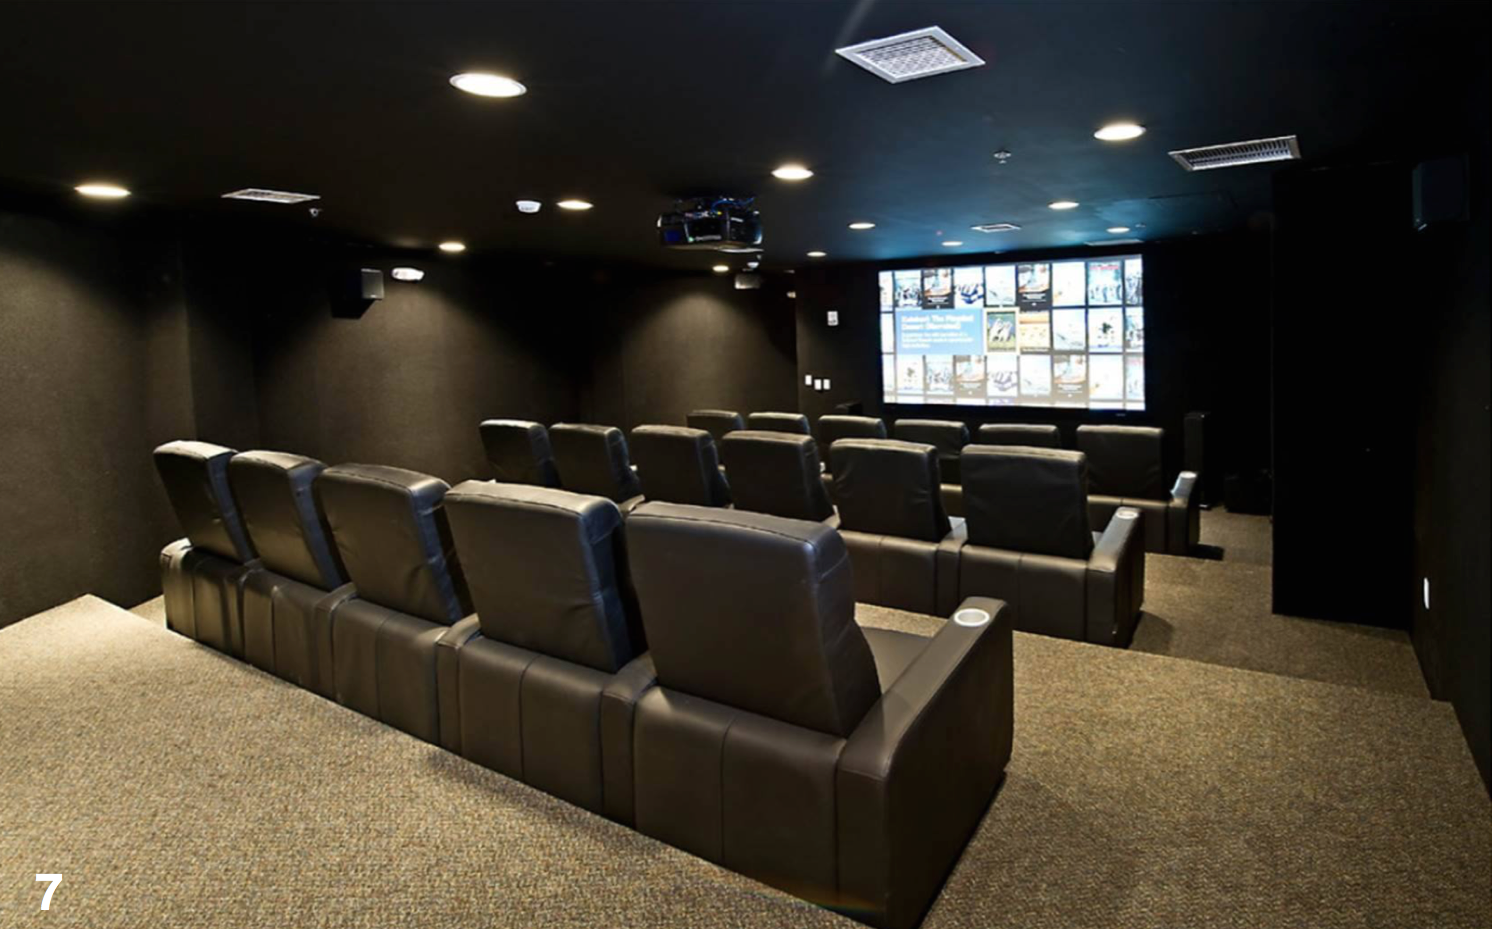 The Epic Home Theater Photo Critique Thread-screen-shot-2016-07-28-11.25.24-am.png